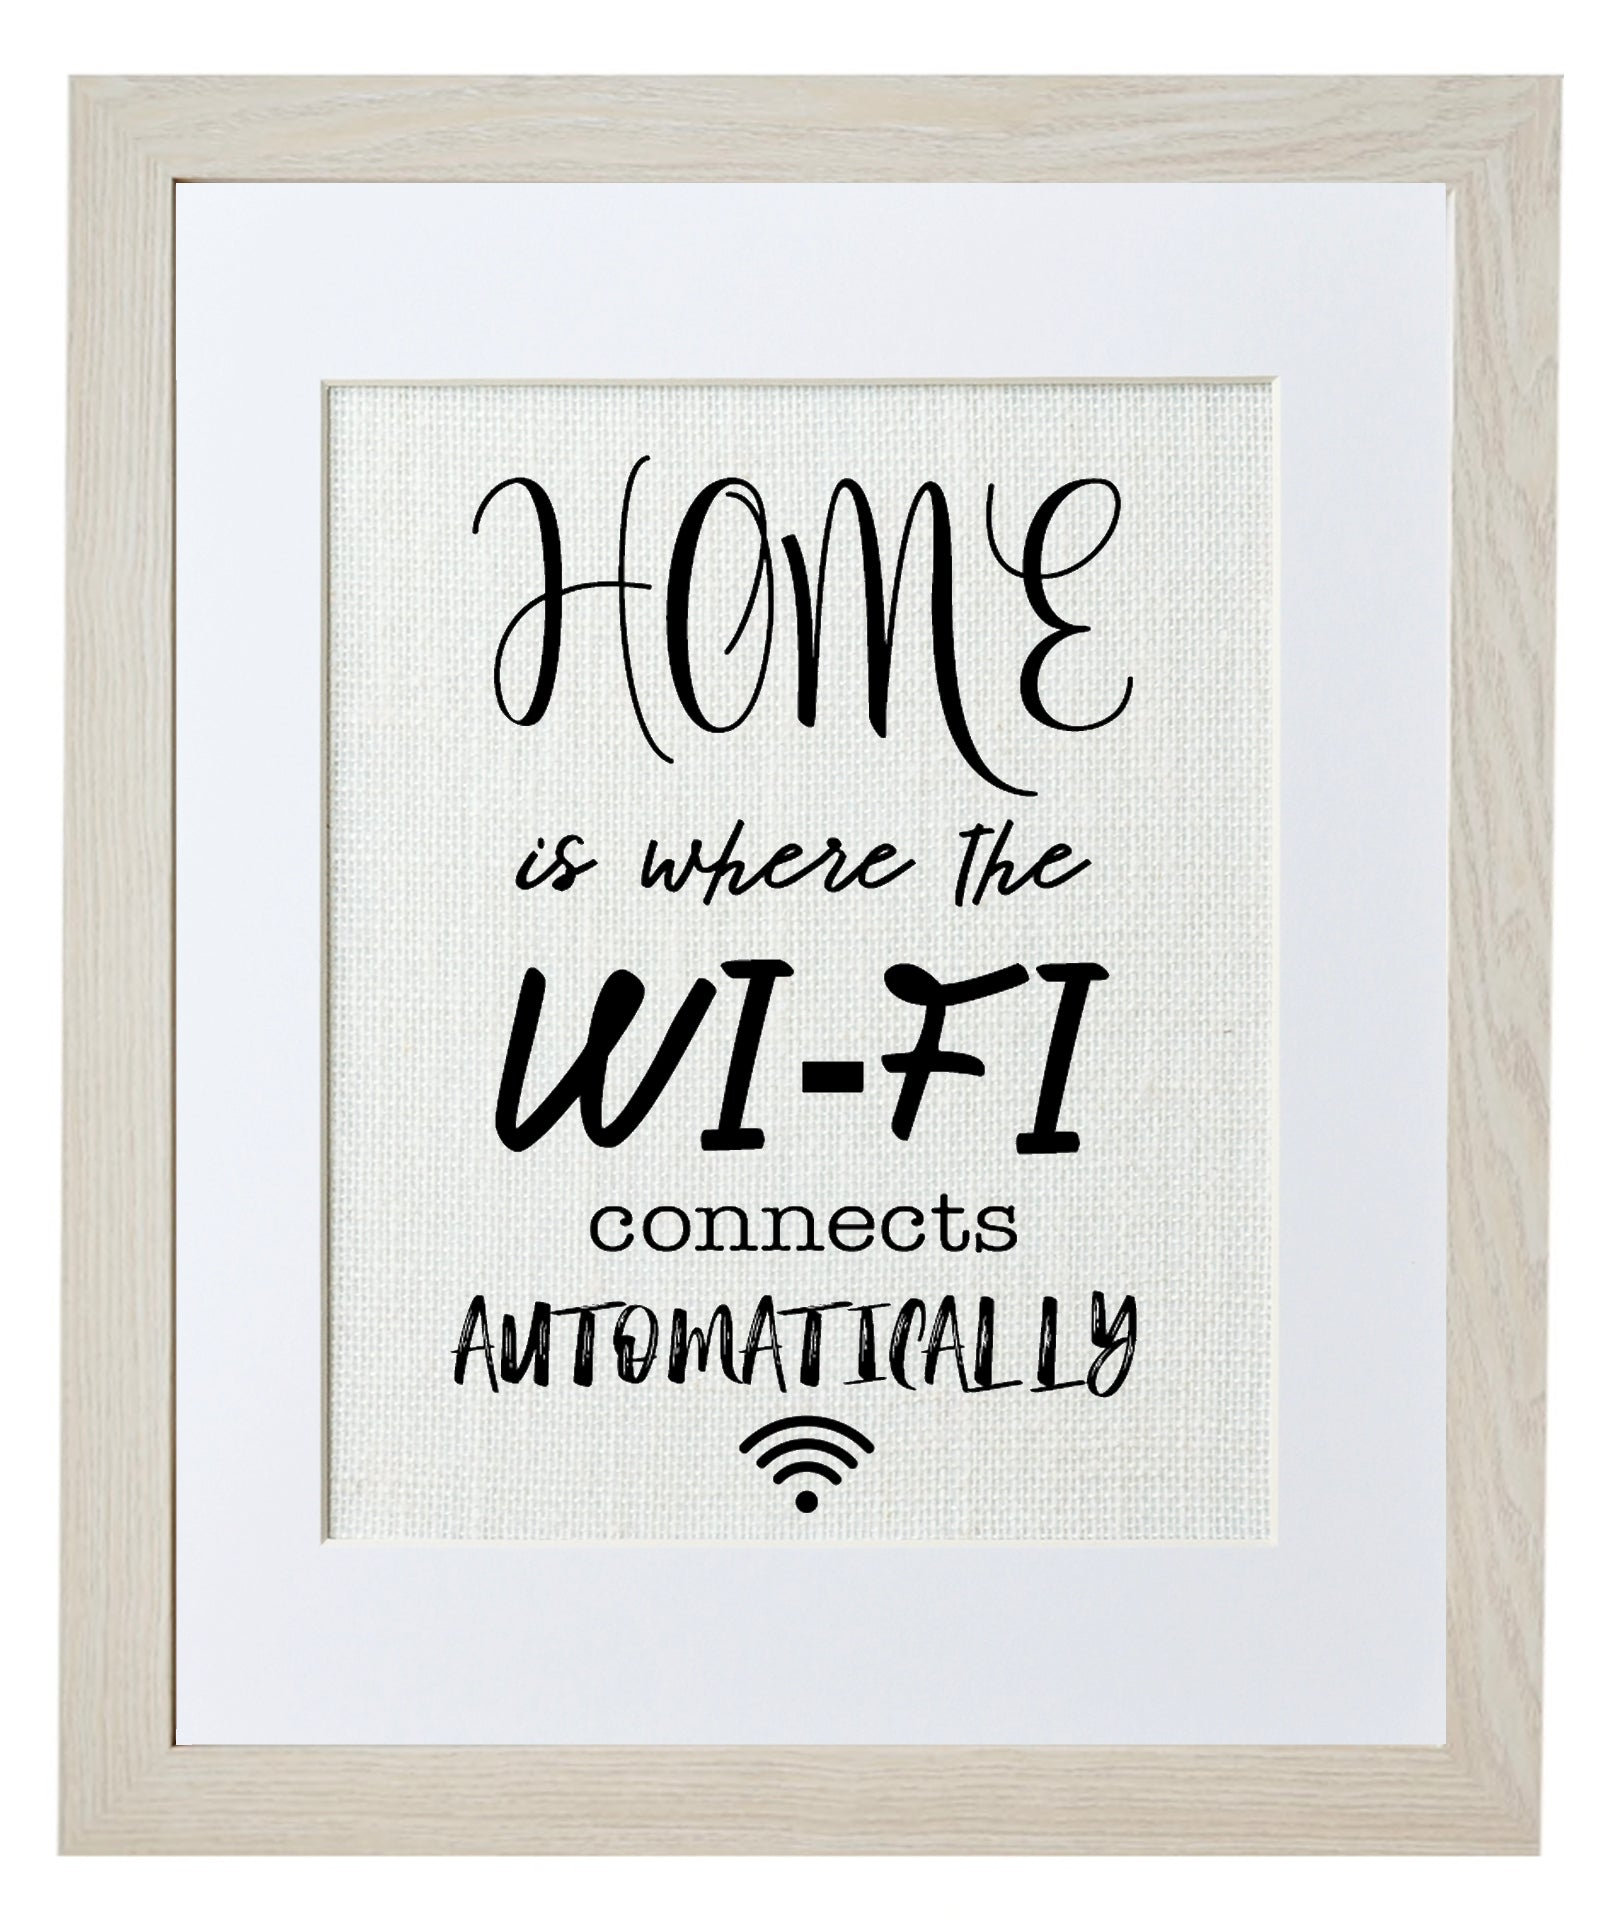 Home is WIFI